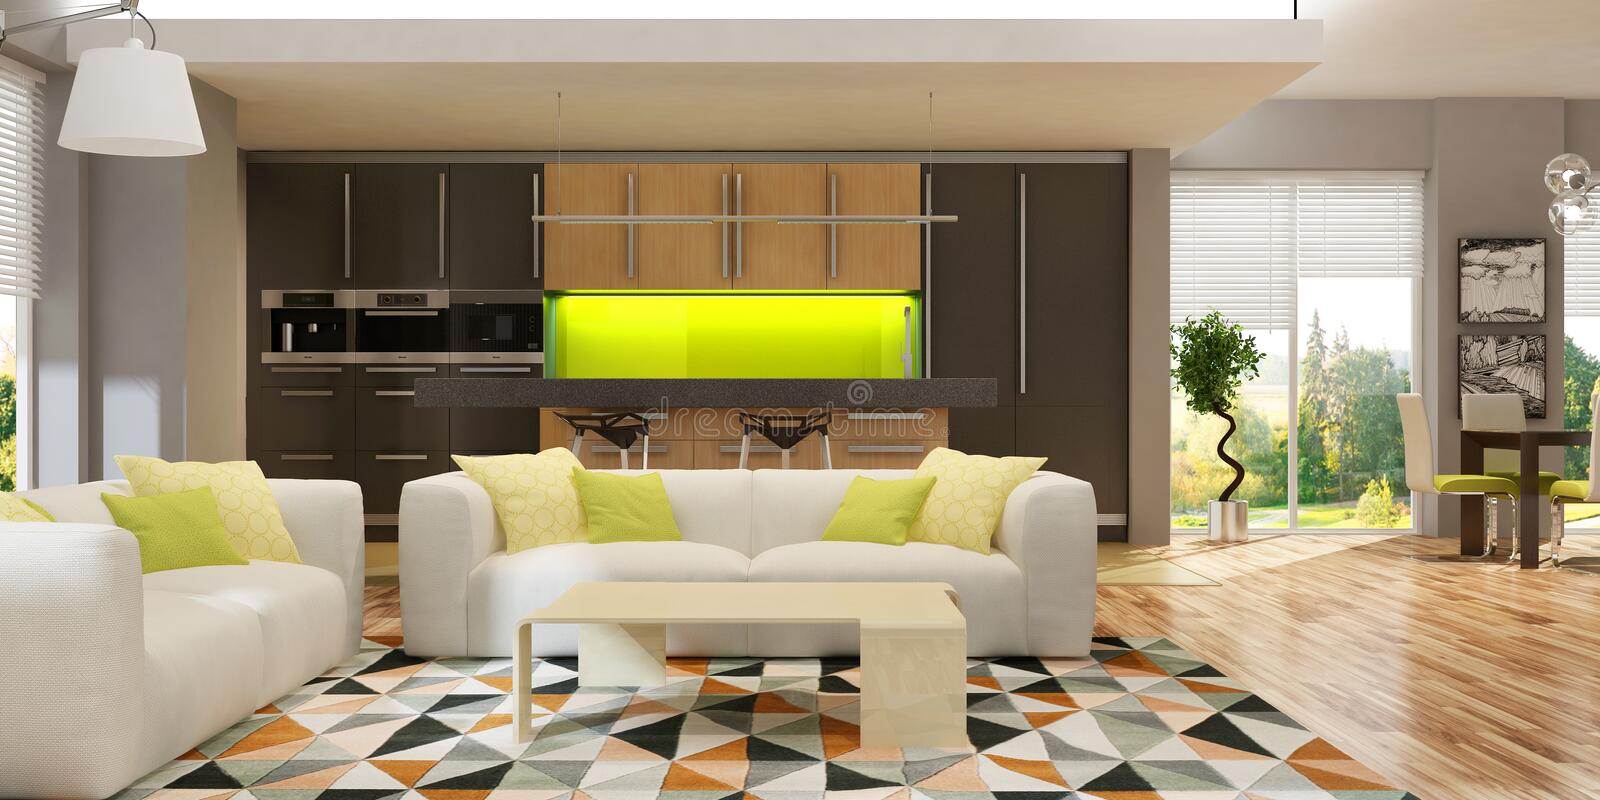 Modern interior of living room with the kitchen in a house or apartment in grey colors with green accents stock photo